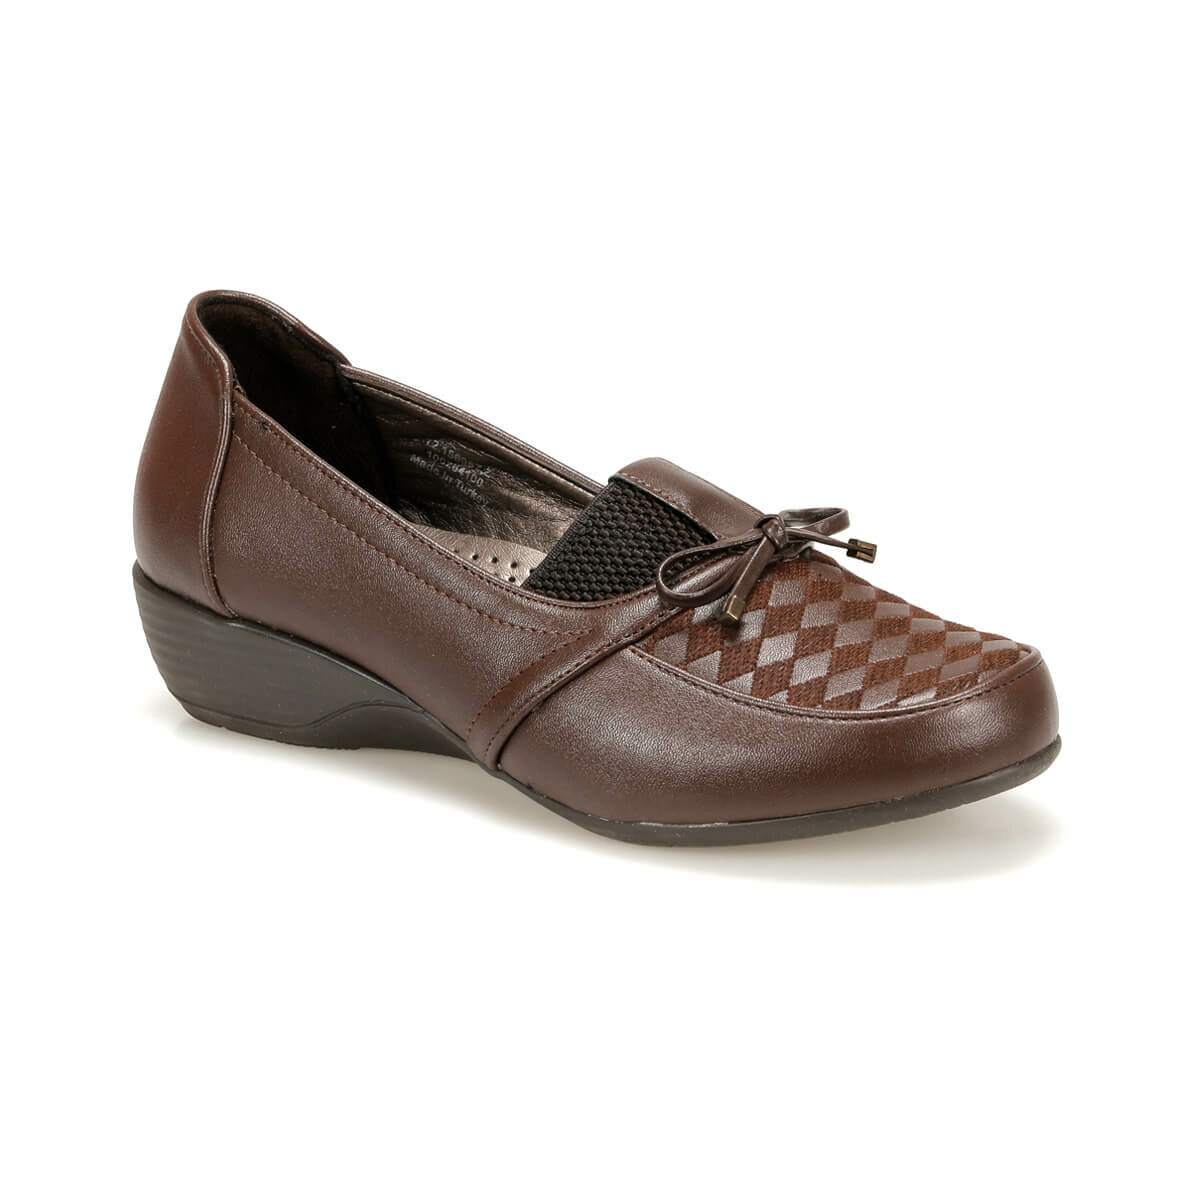 FLO 72. 156967.Z Brown Women 'S Shoes Polaris